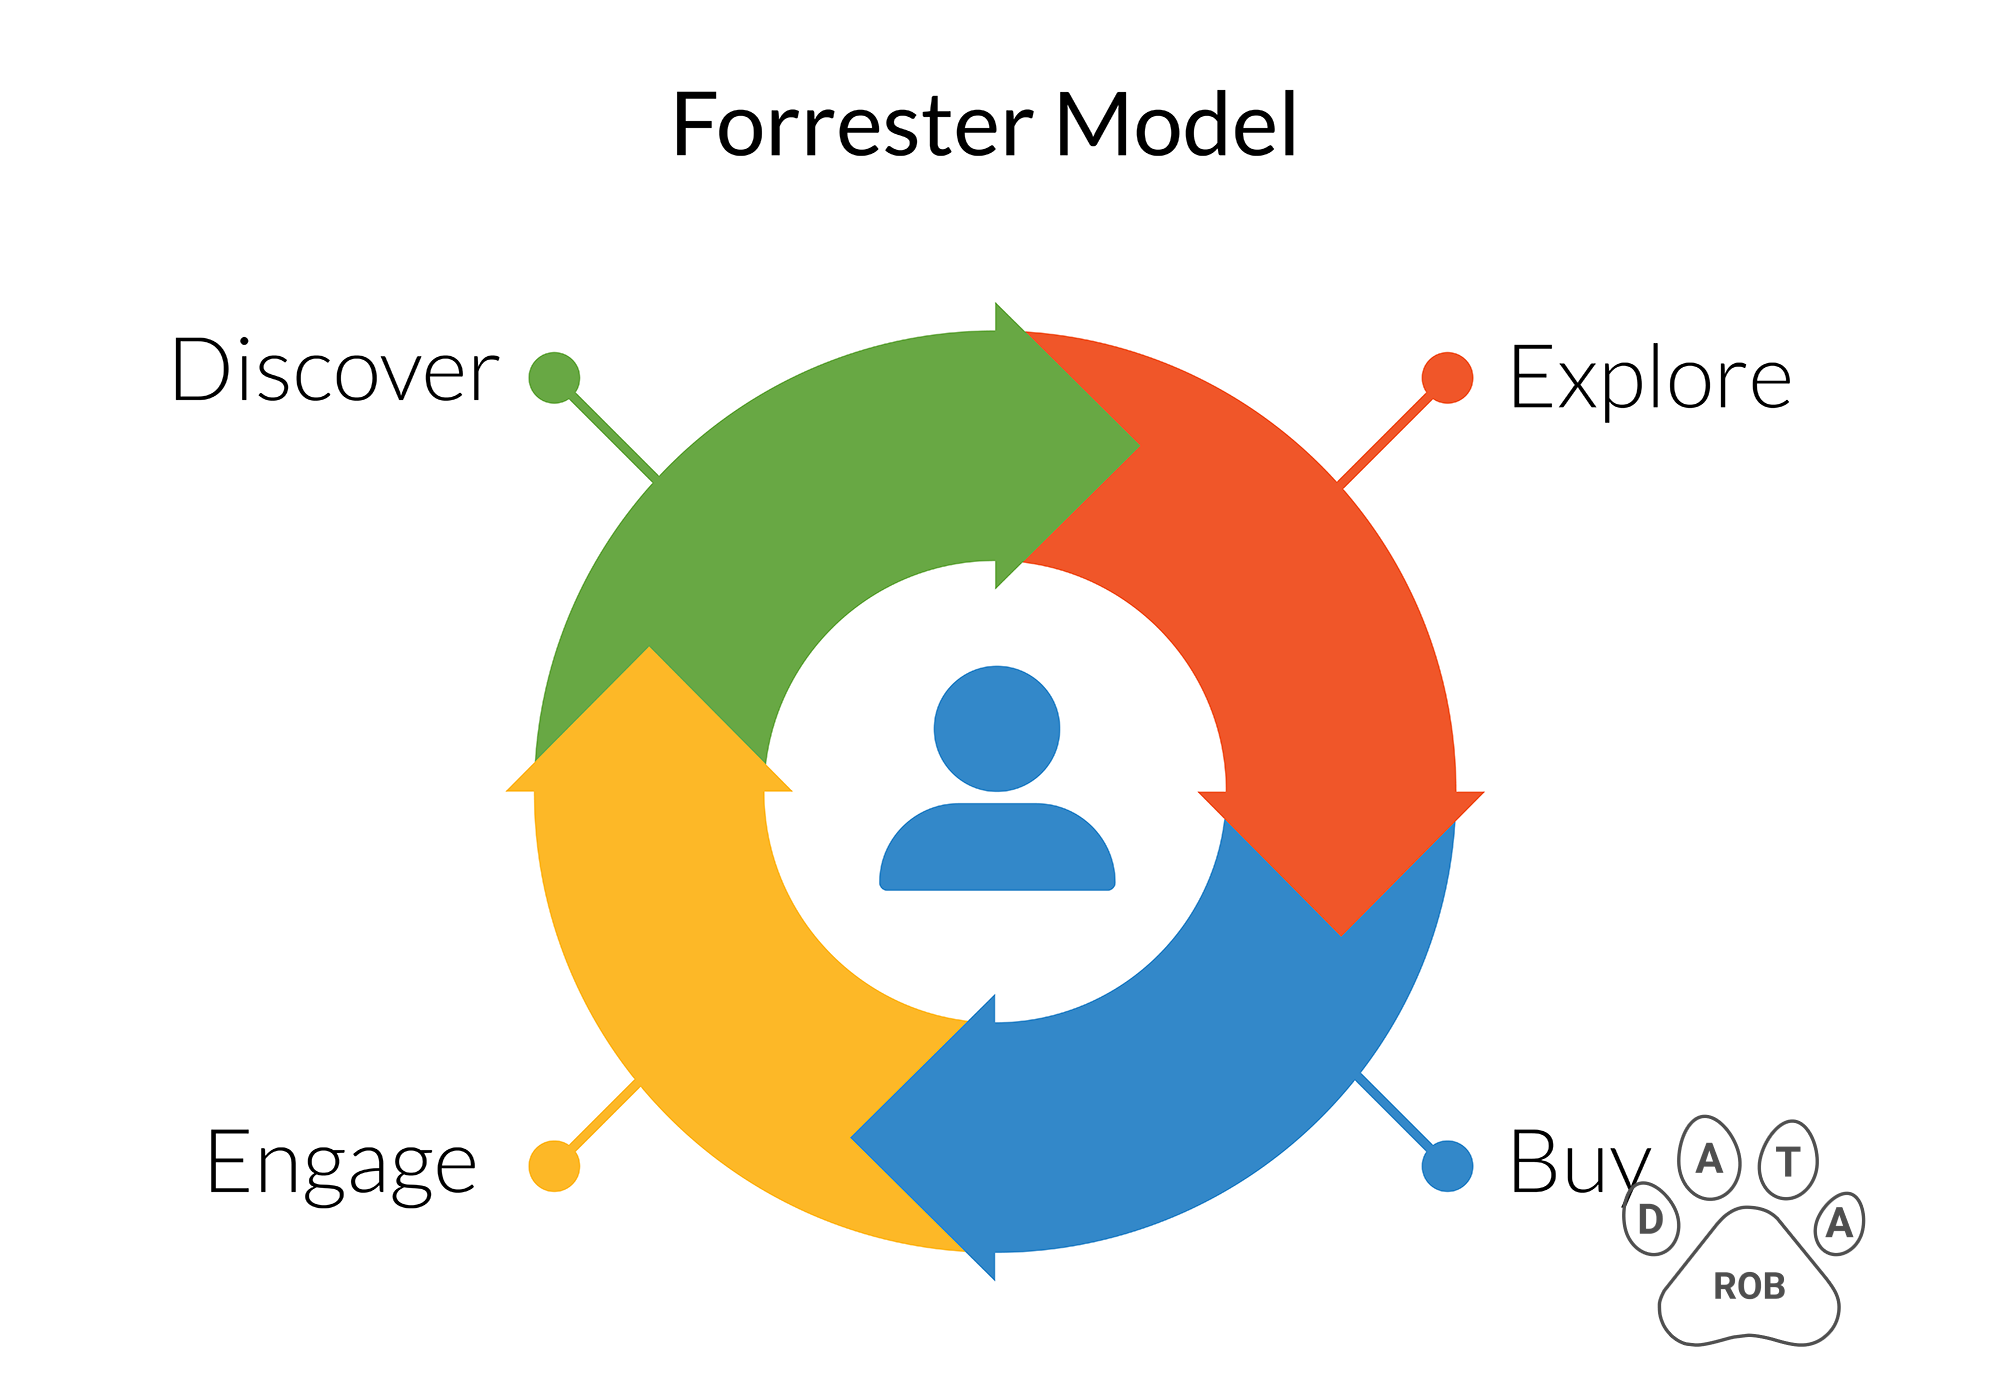 Forrester Sales Funnel Model